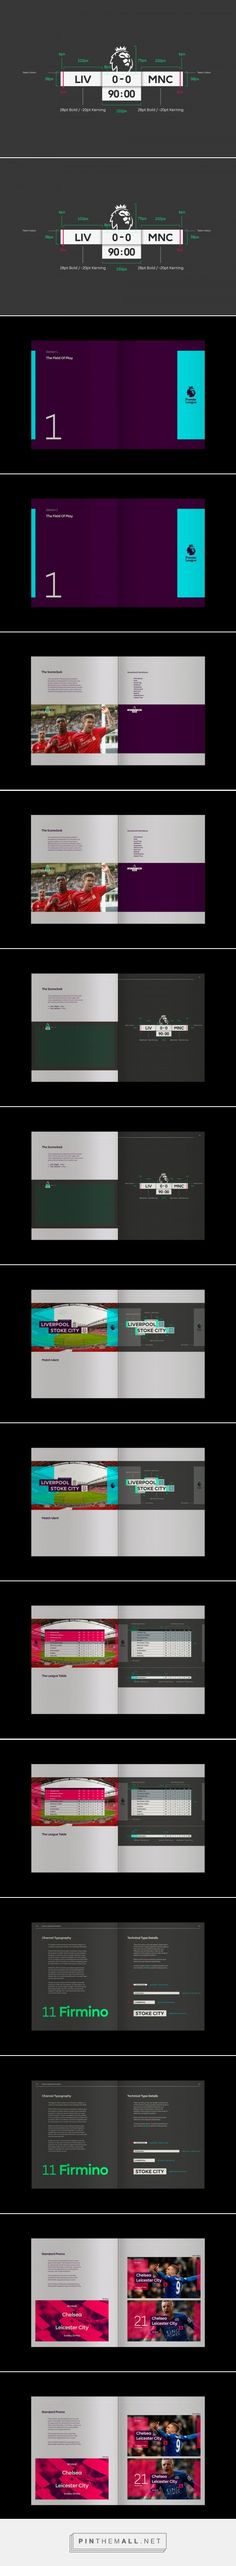 Premier League TV Guidelines by DixonBaxi — The Brand Identity... - a grouped images picture - Pin Them All